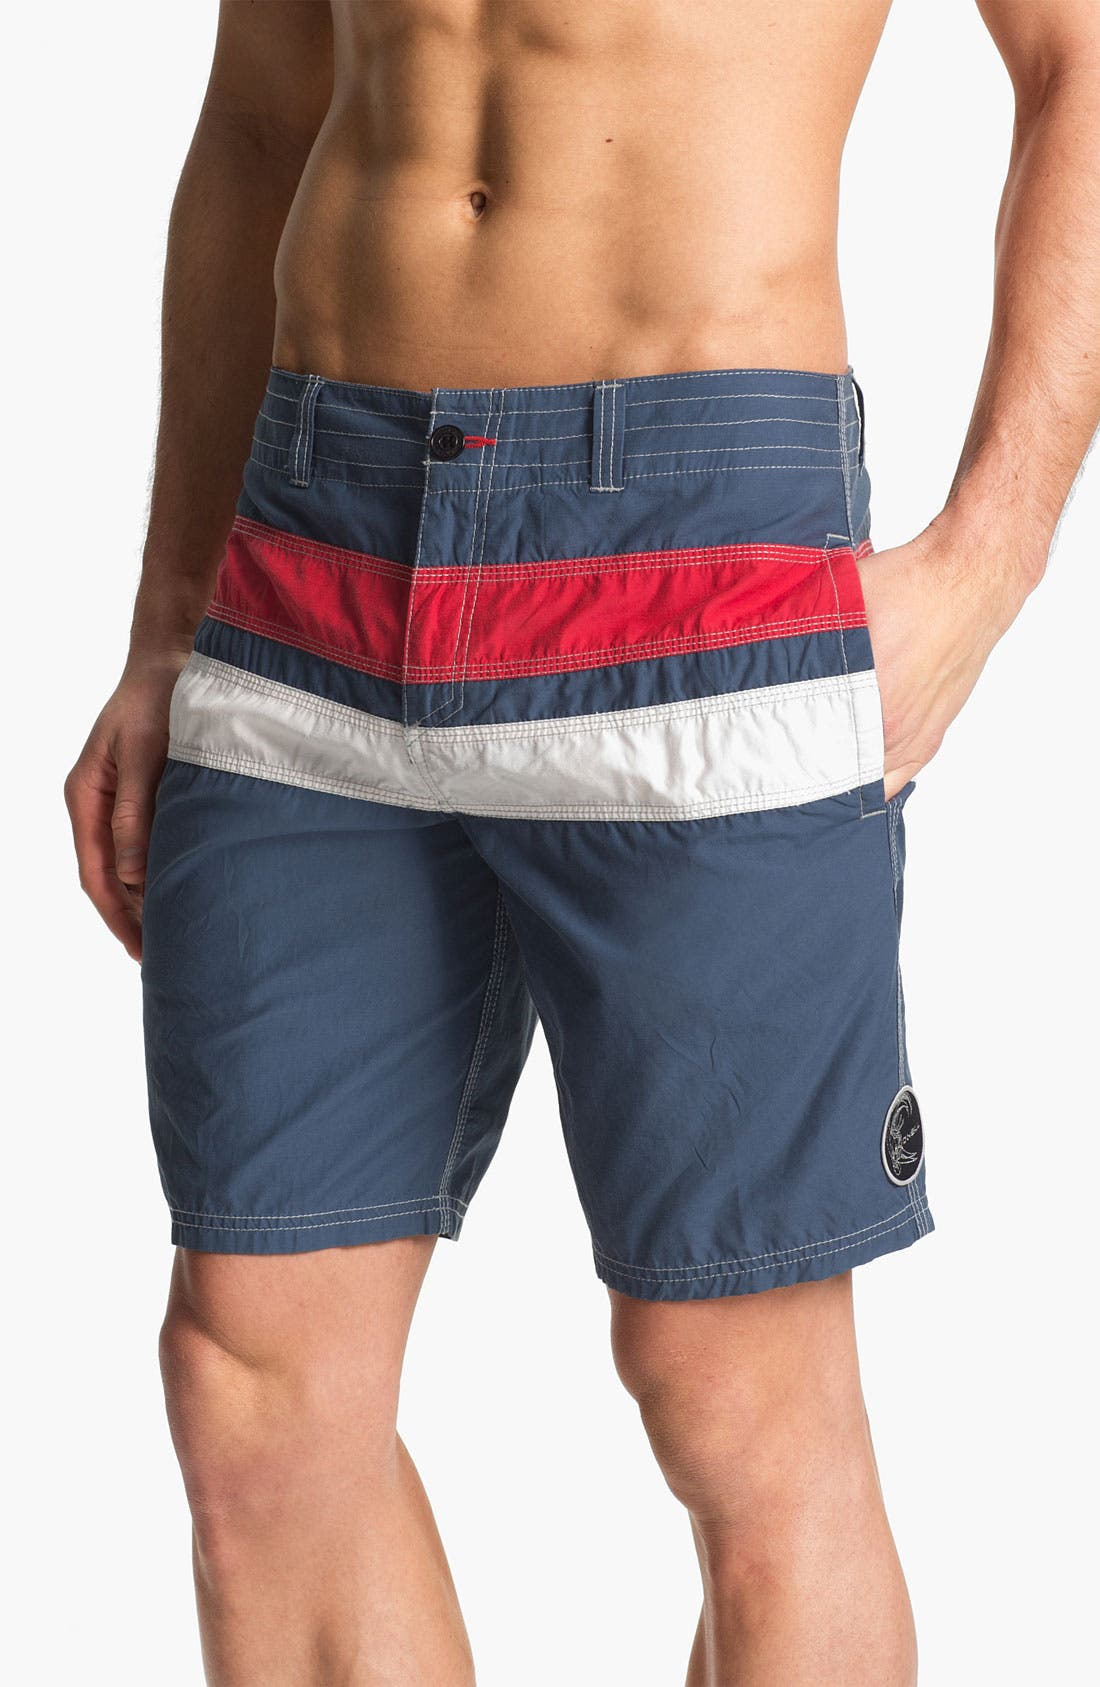 Alternate Image 1 Selected - O'Neill 'Cult' Board Shorts